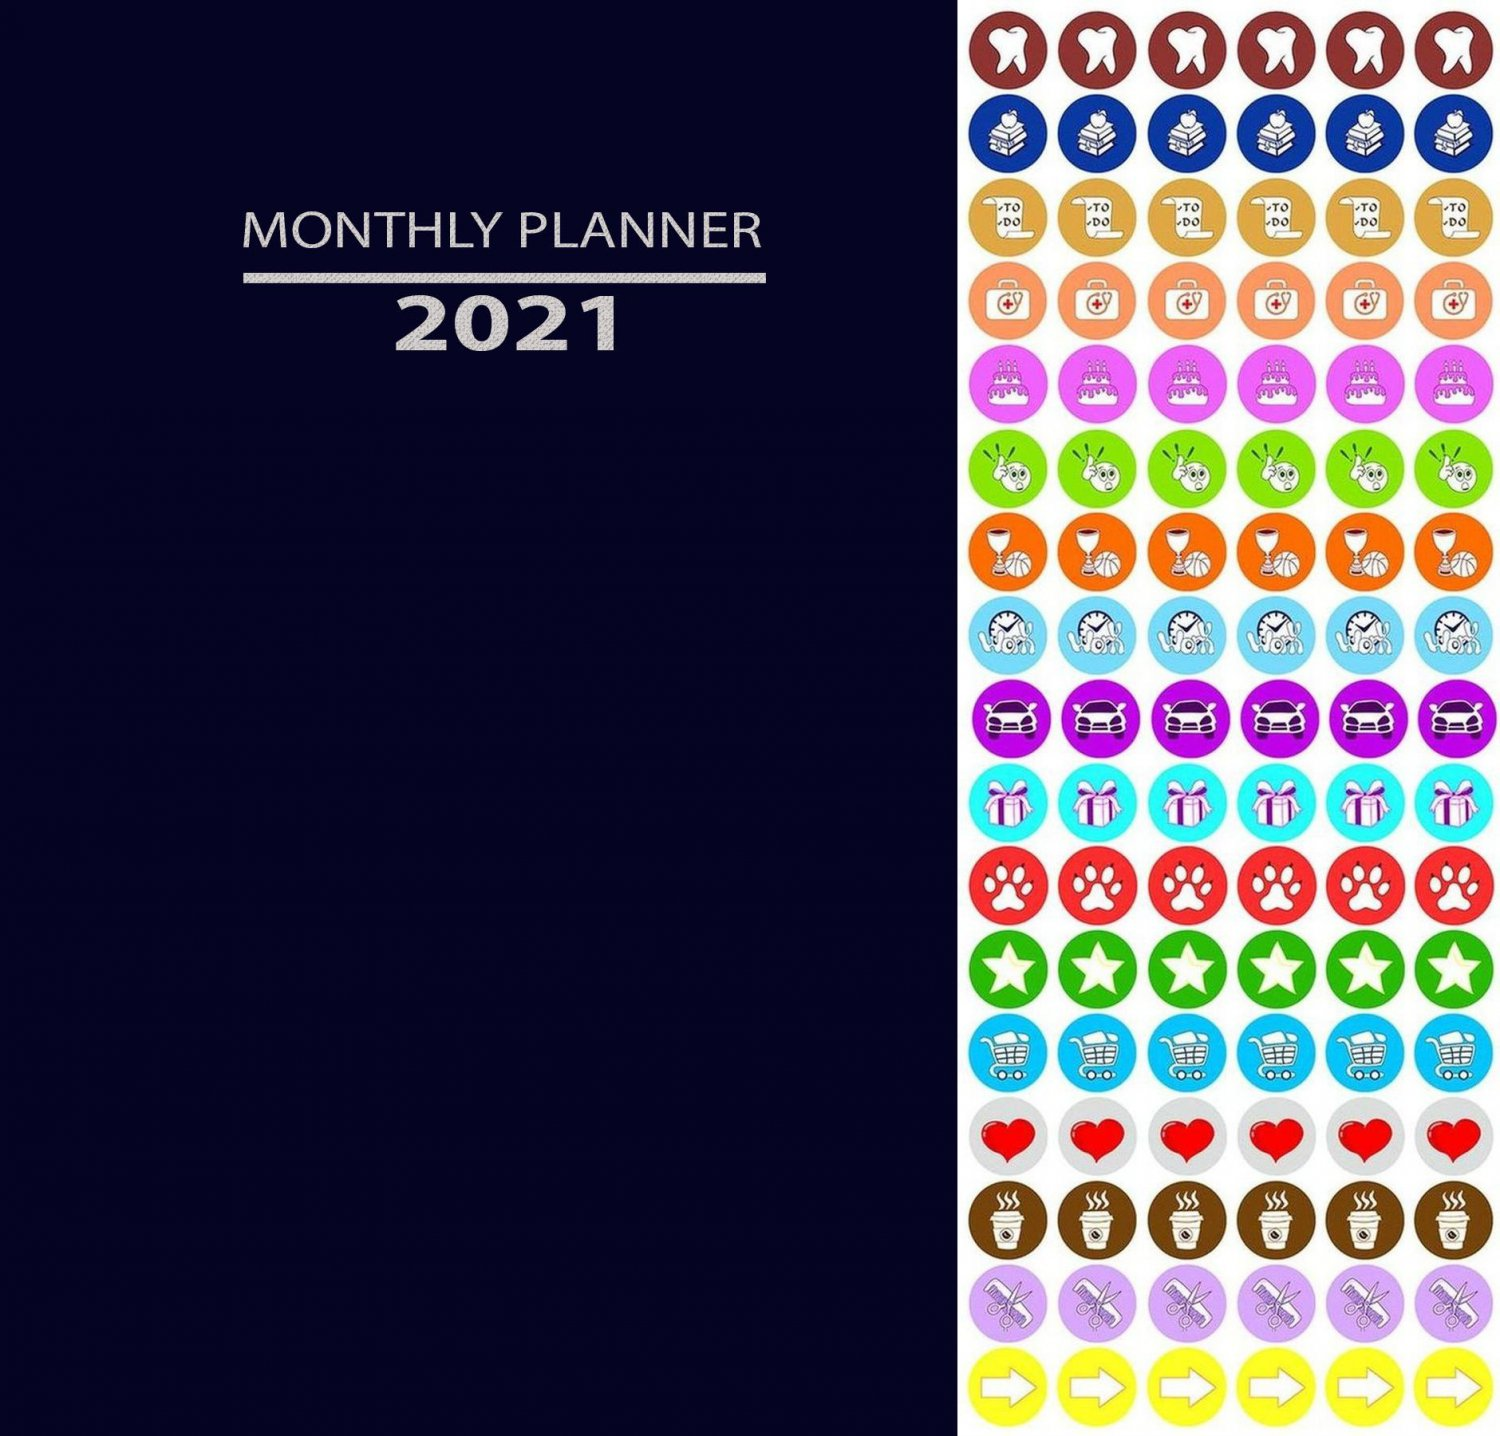 2021 Monthly Appointment Planner/Calendar/Organizer - Color Color (Navy Blue) - with 100 Stickers